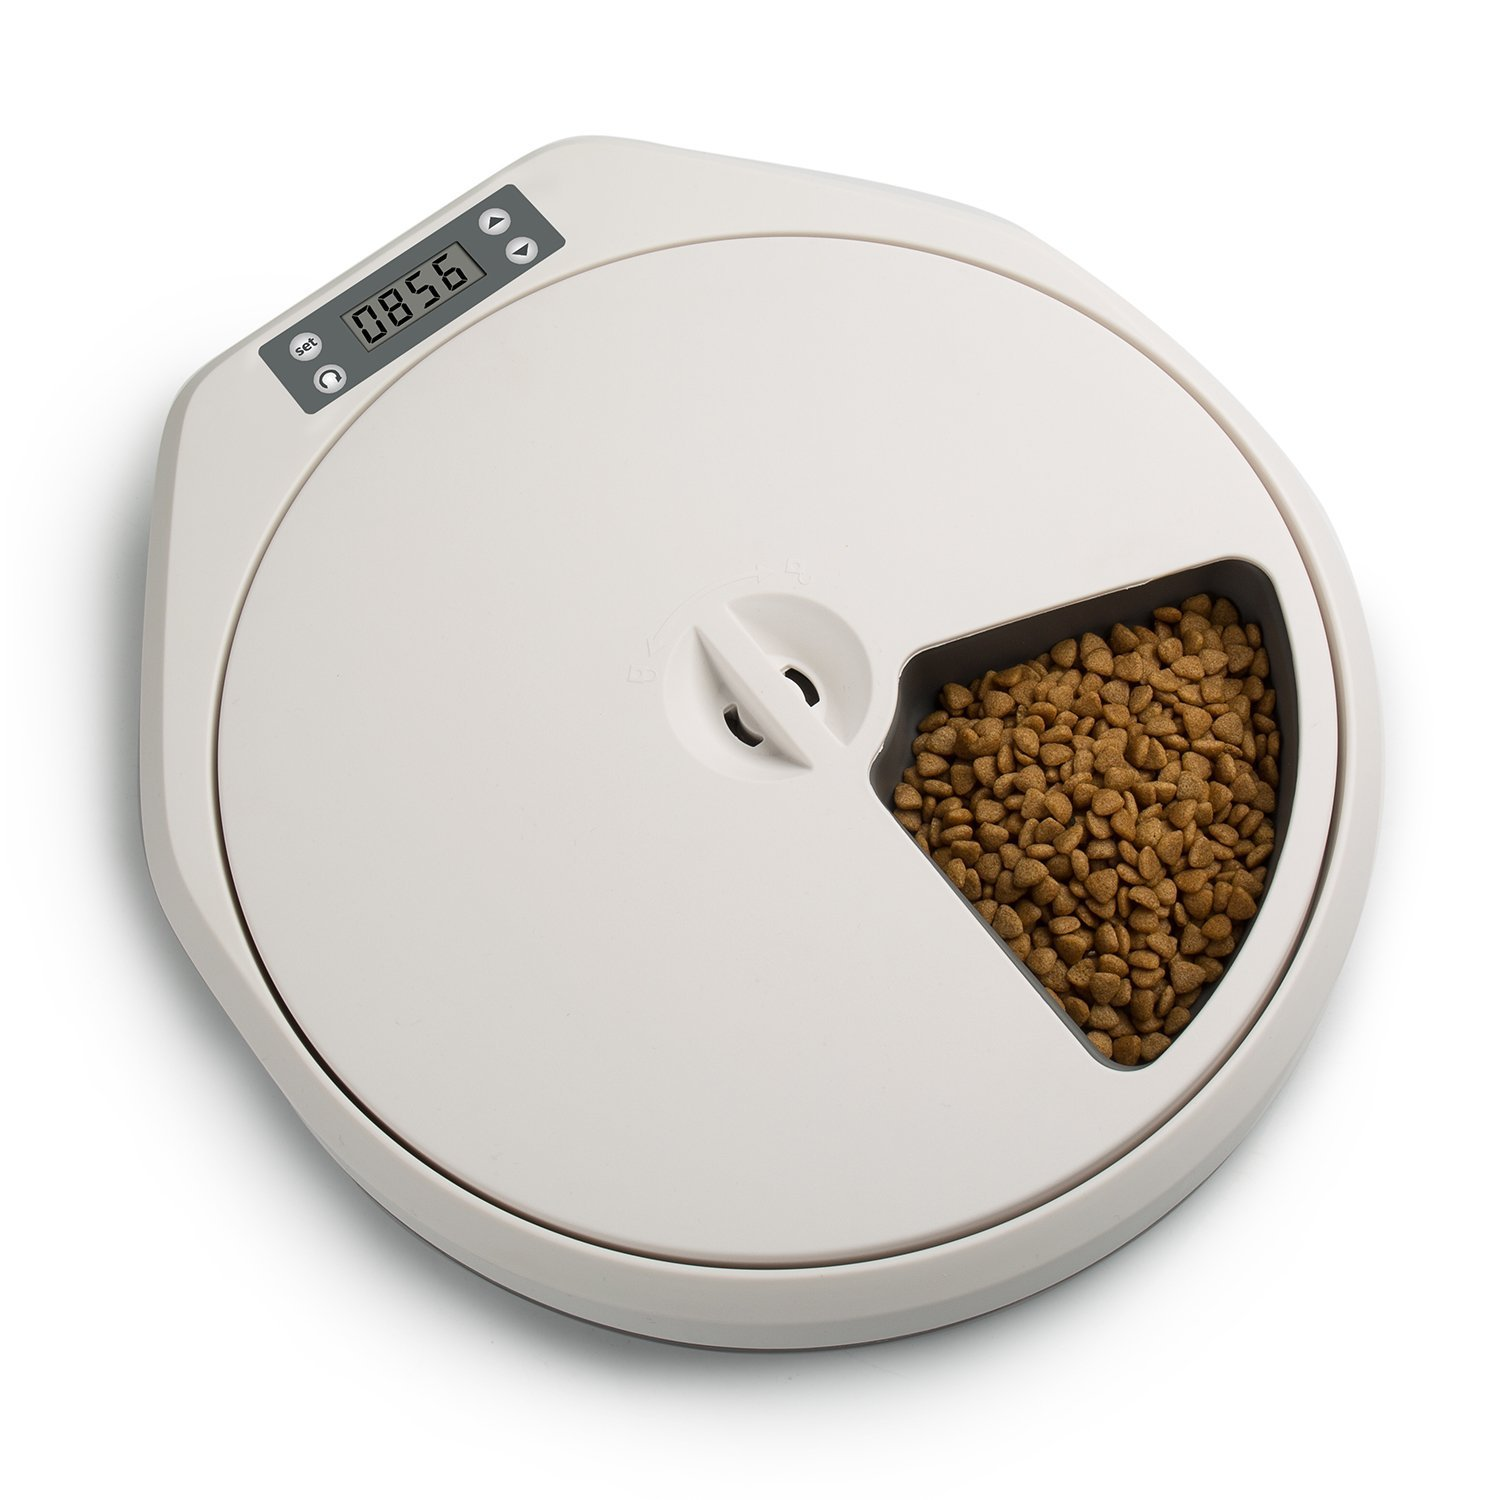 PAWISE 5-Meal Automatic Feeder for Dogs and Cats by PAWISE